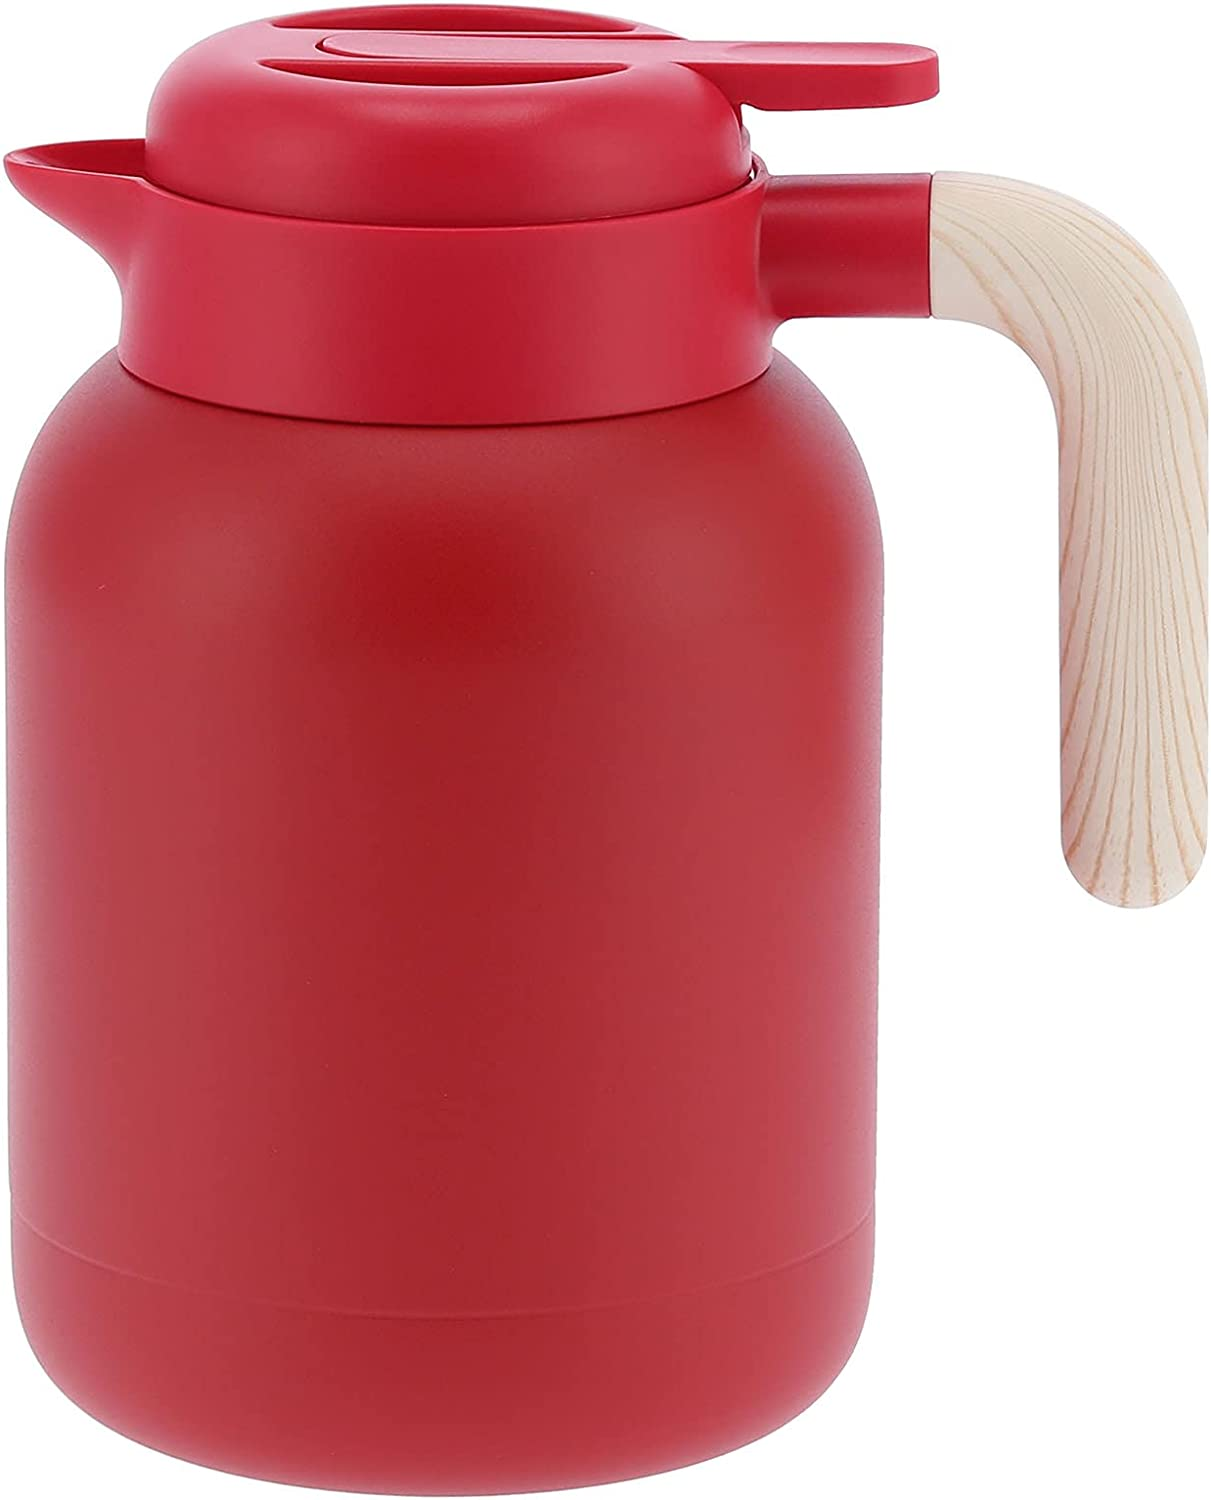 Kettle Insulation Vacuum Stainless San Diego Mall Max 51% OFF Steel Pot Coffee 1.5L 50.7Oz